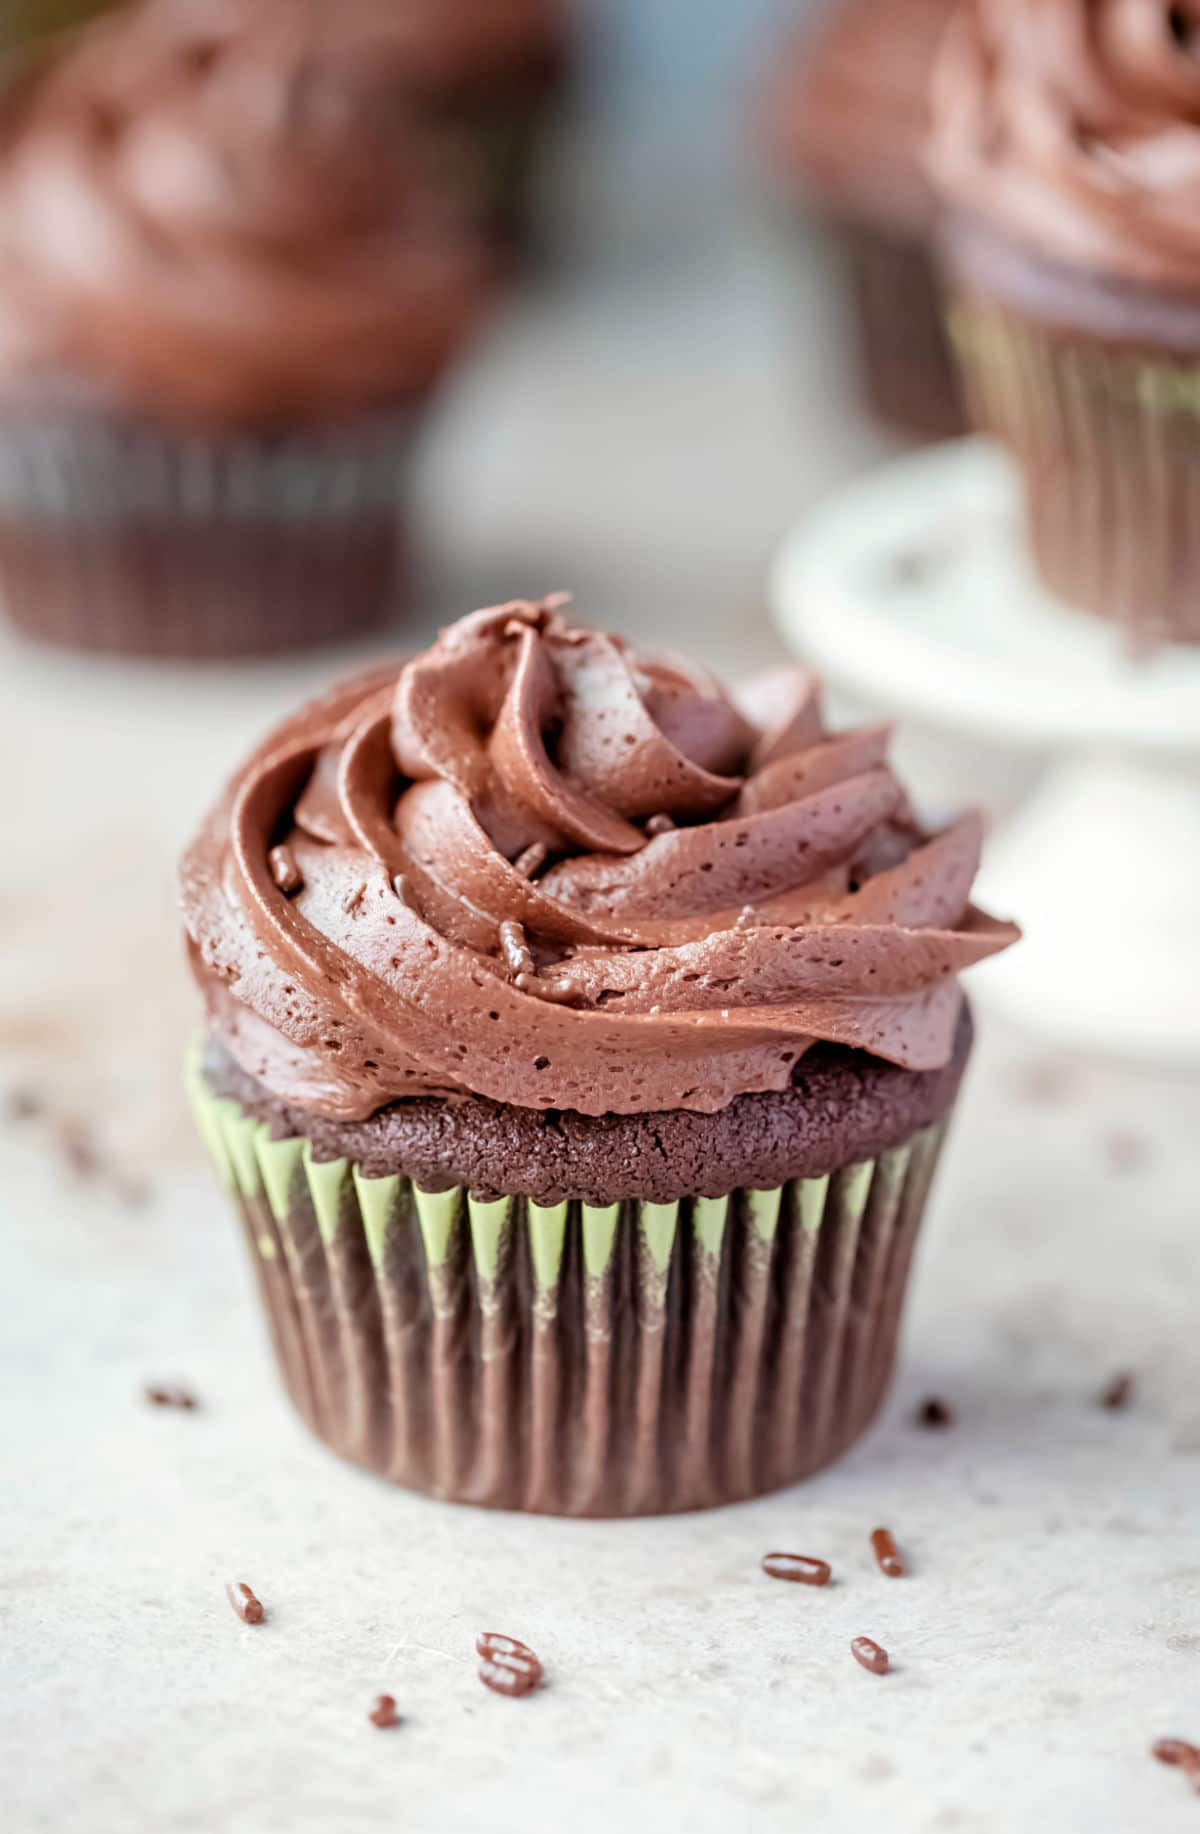 chocolate cupcake topped with chocolate frosting next to other chocolate cupcakes.